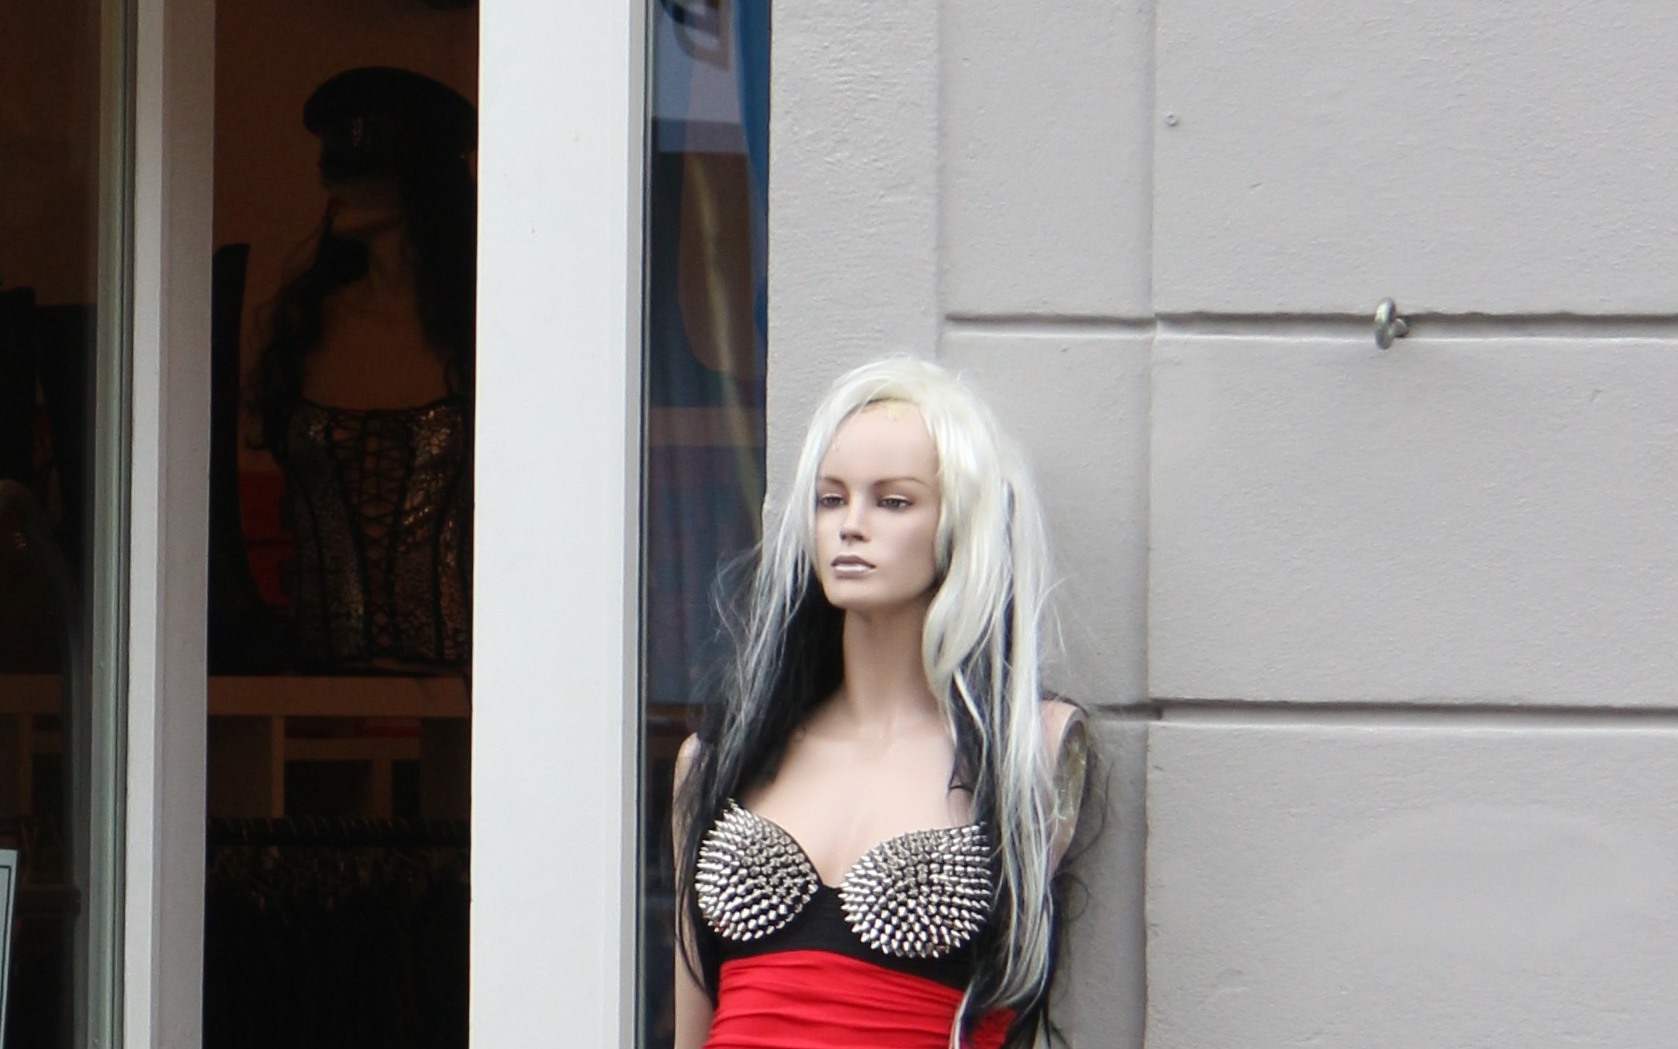 The first brothel in Europe with sex dolls opened in Barcelona